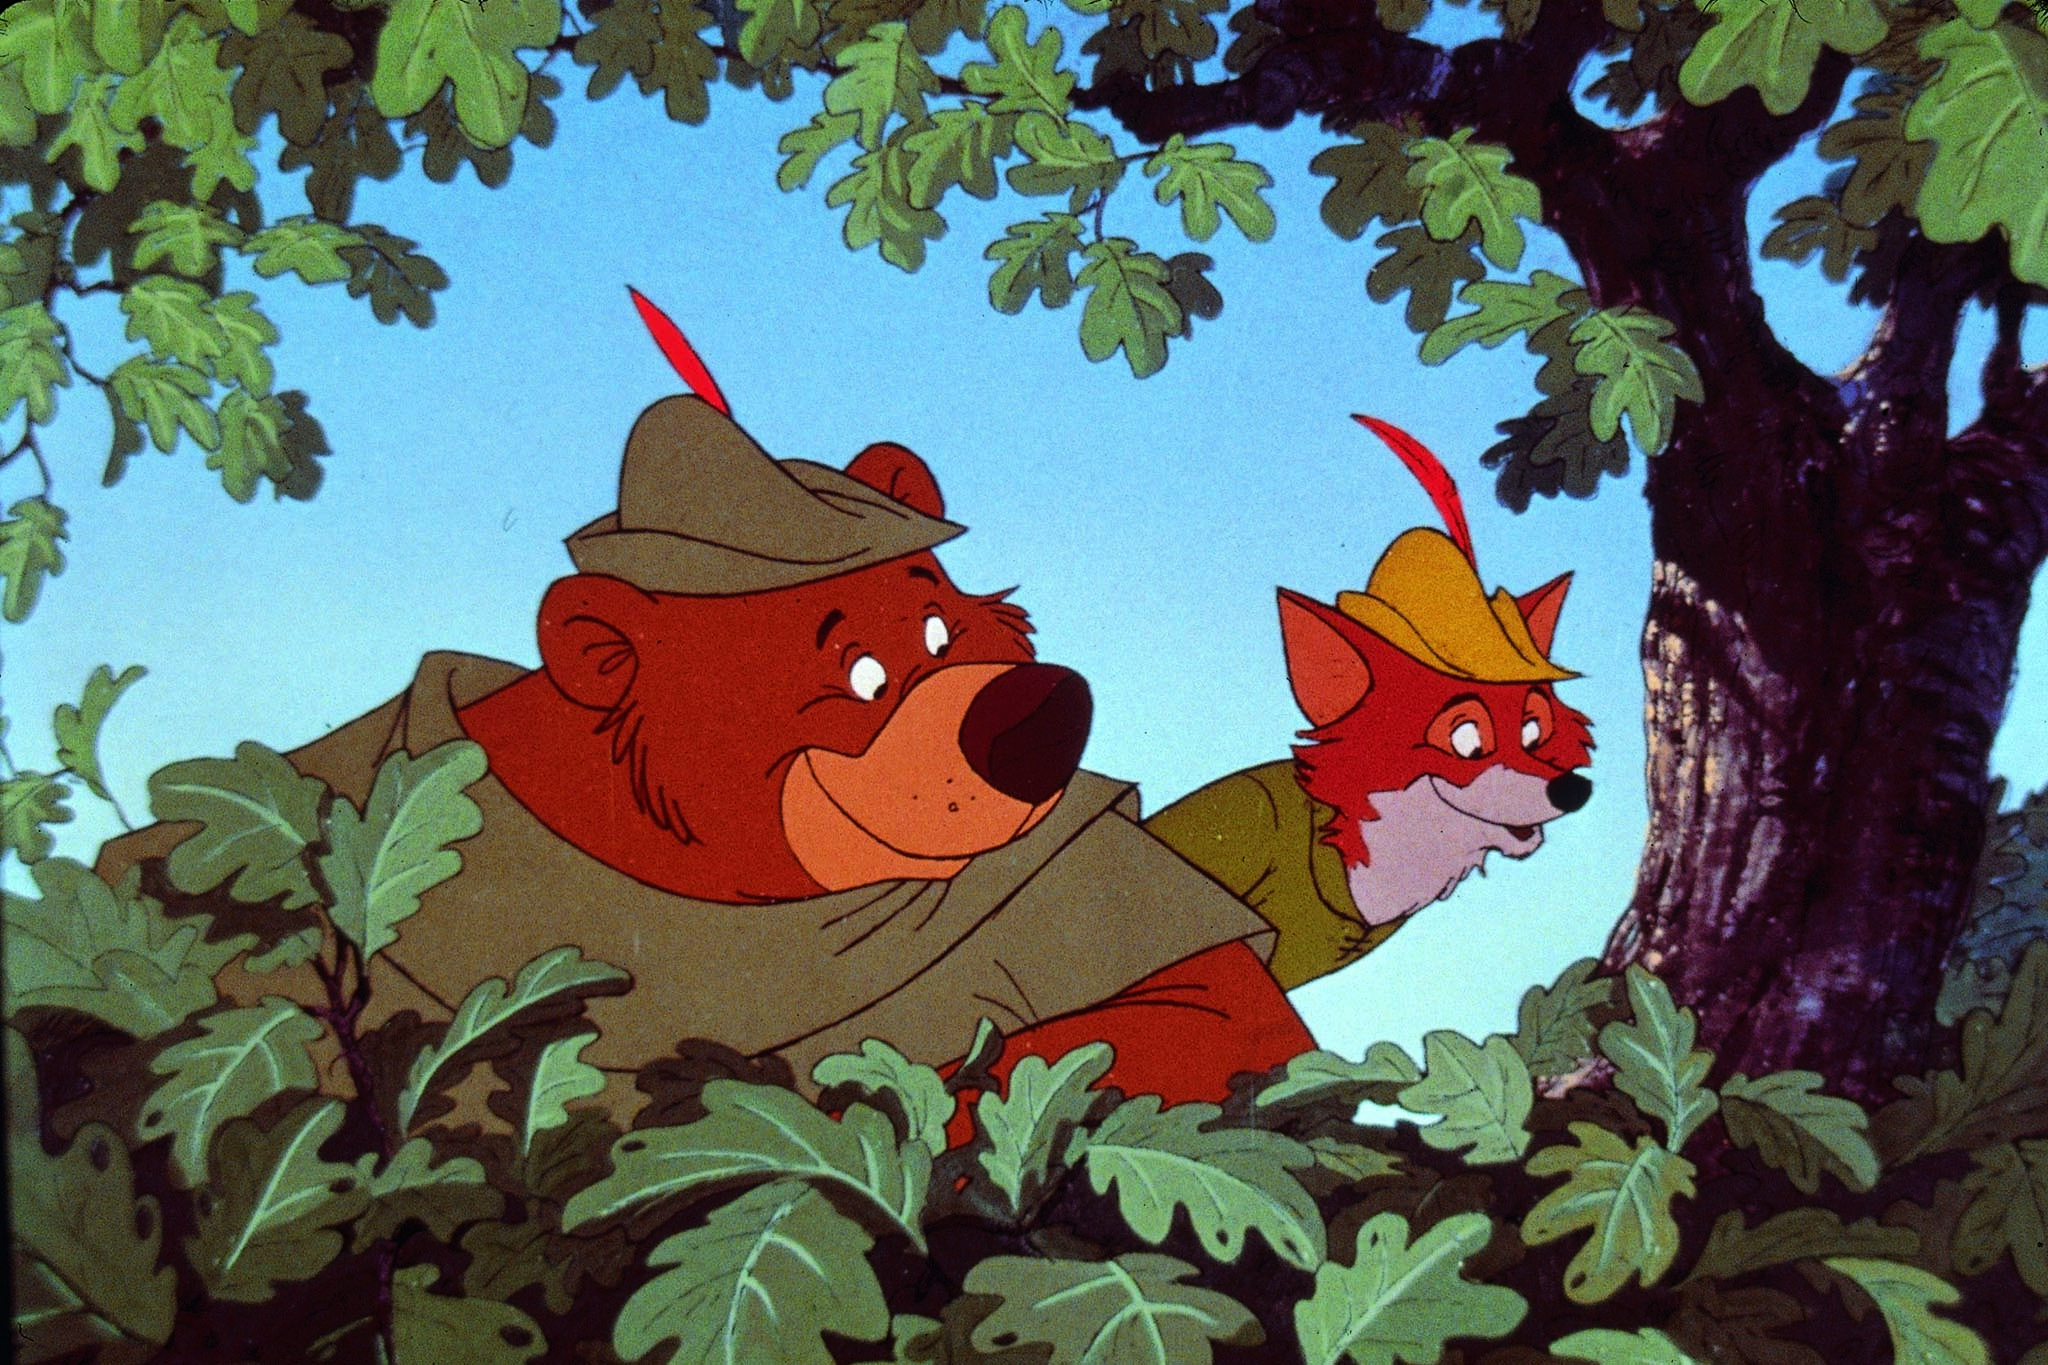 Best Disney films: Robin Hood